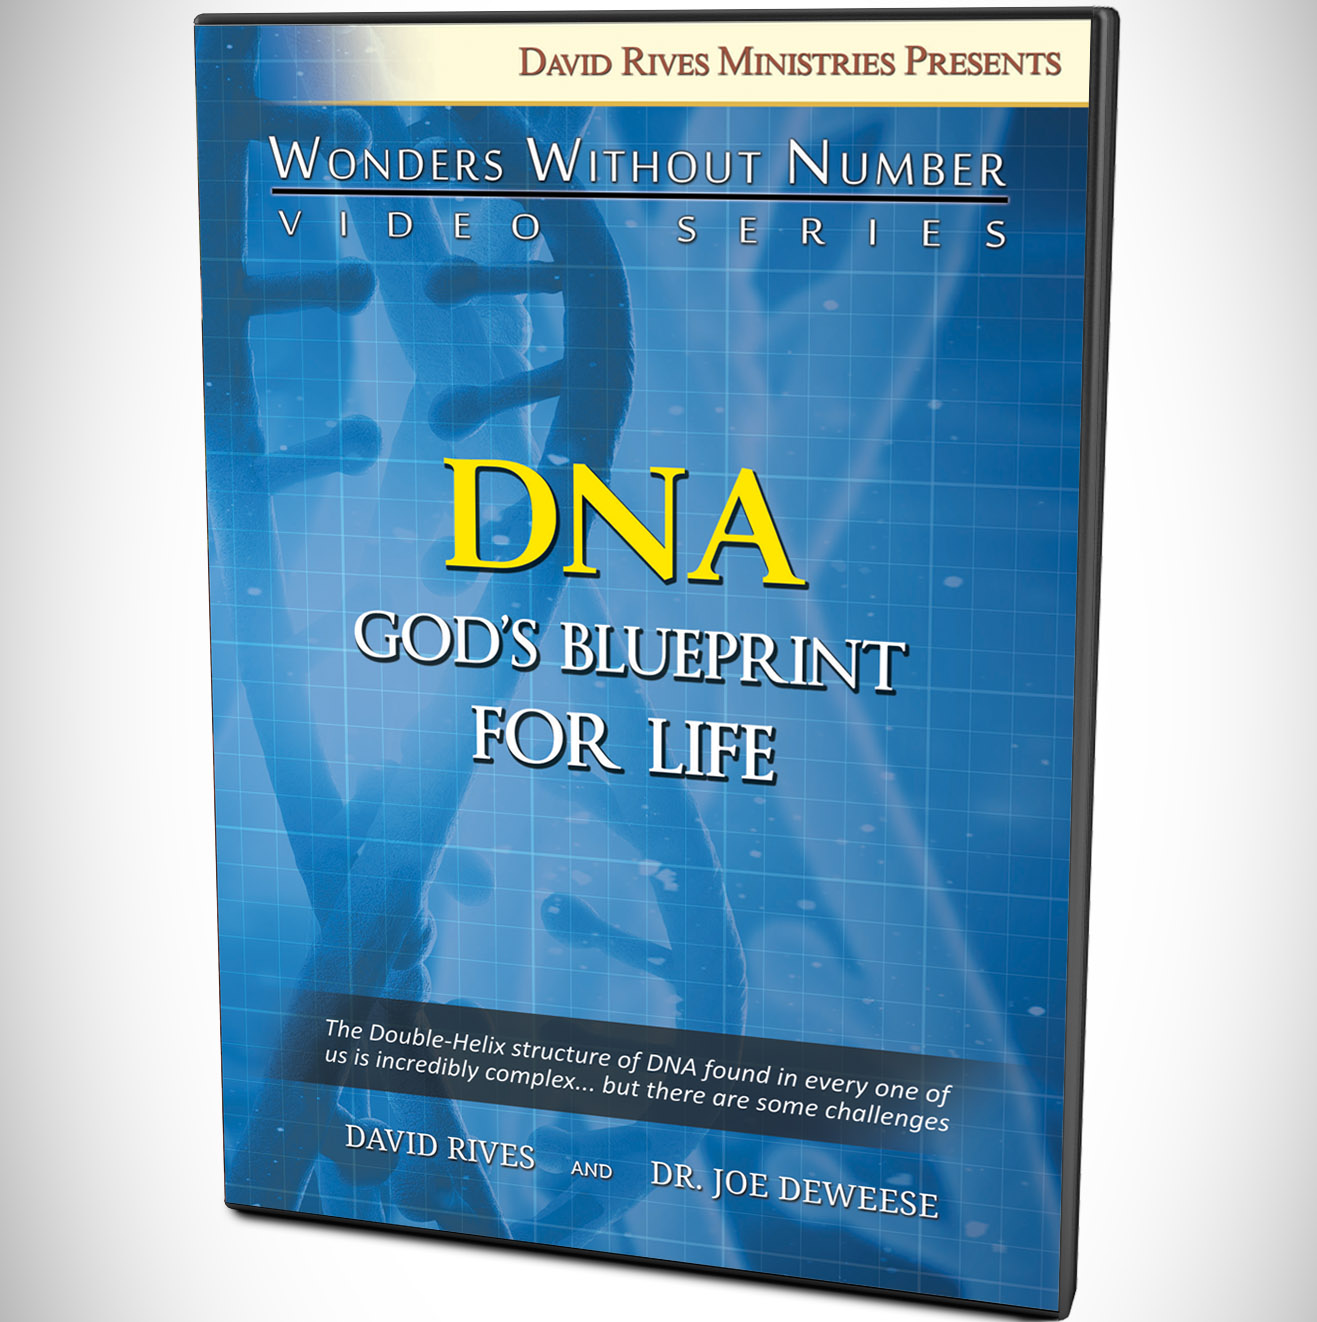 Dna gods blueprint for life dvd dr joe deweese drm dna gods blueprint for life malvernweather